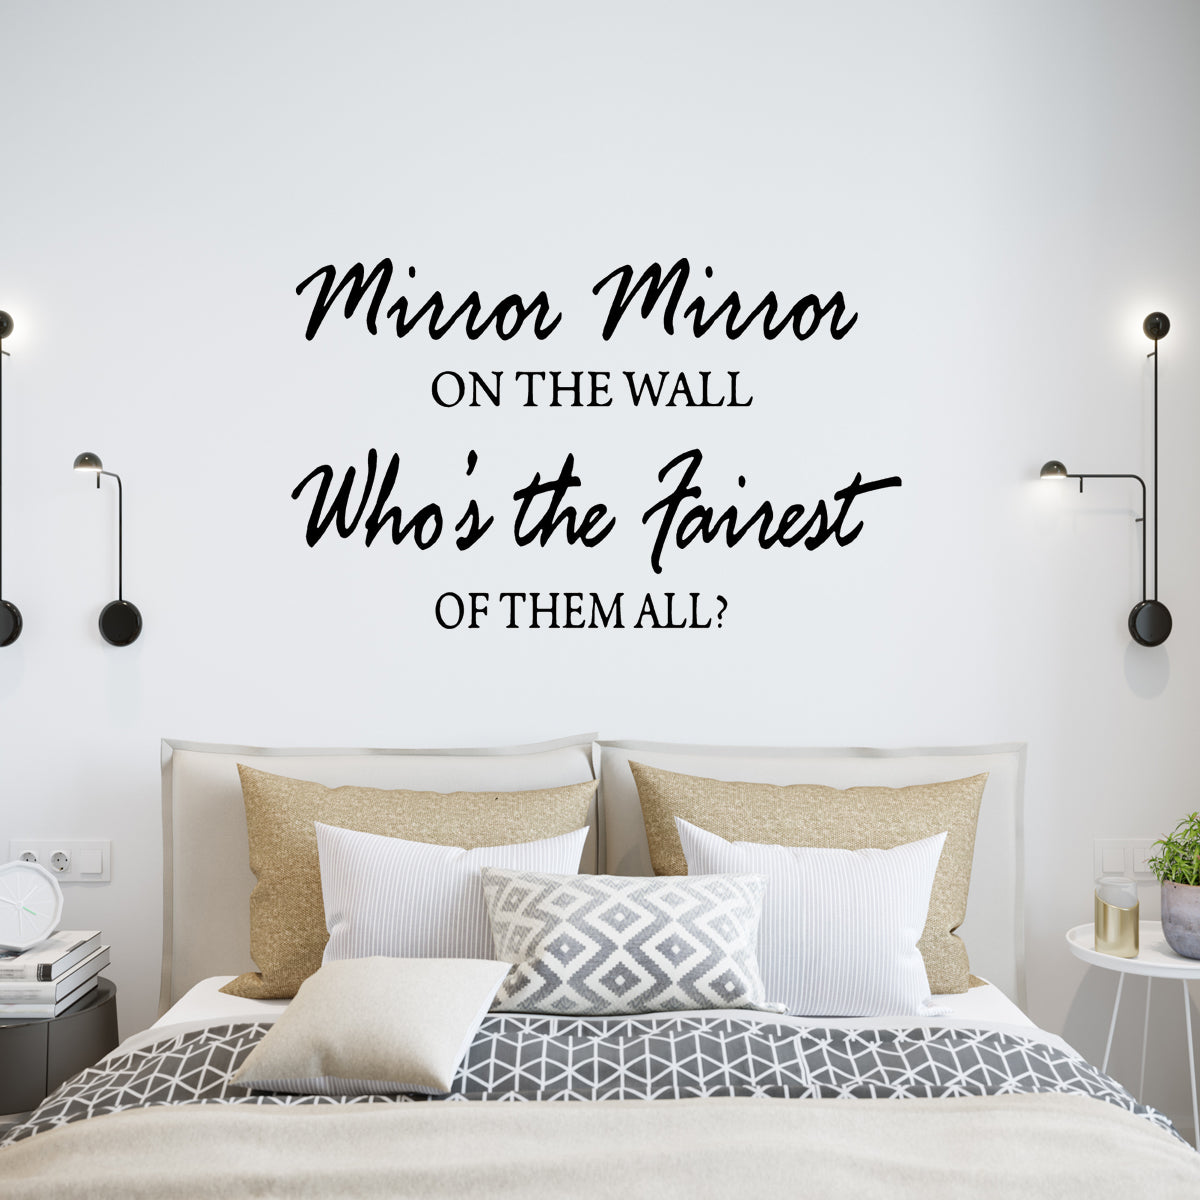 VWAQ Mirror Mirror on the Wall Who's the Fairest of them All Wall Decal